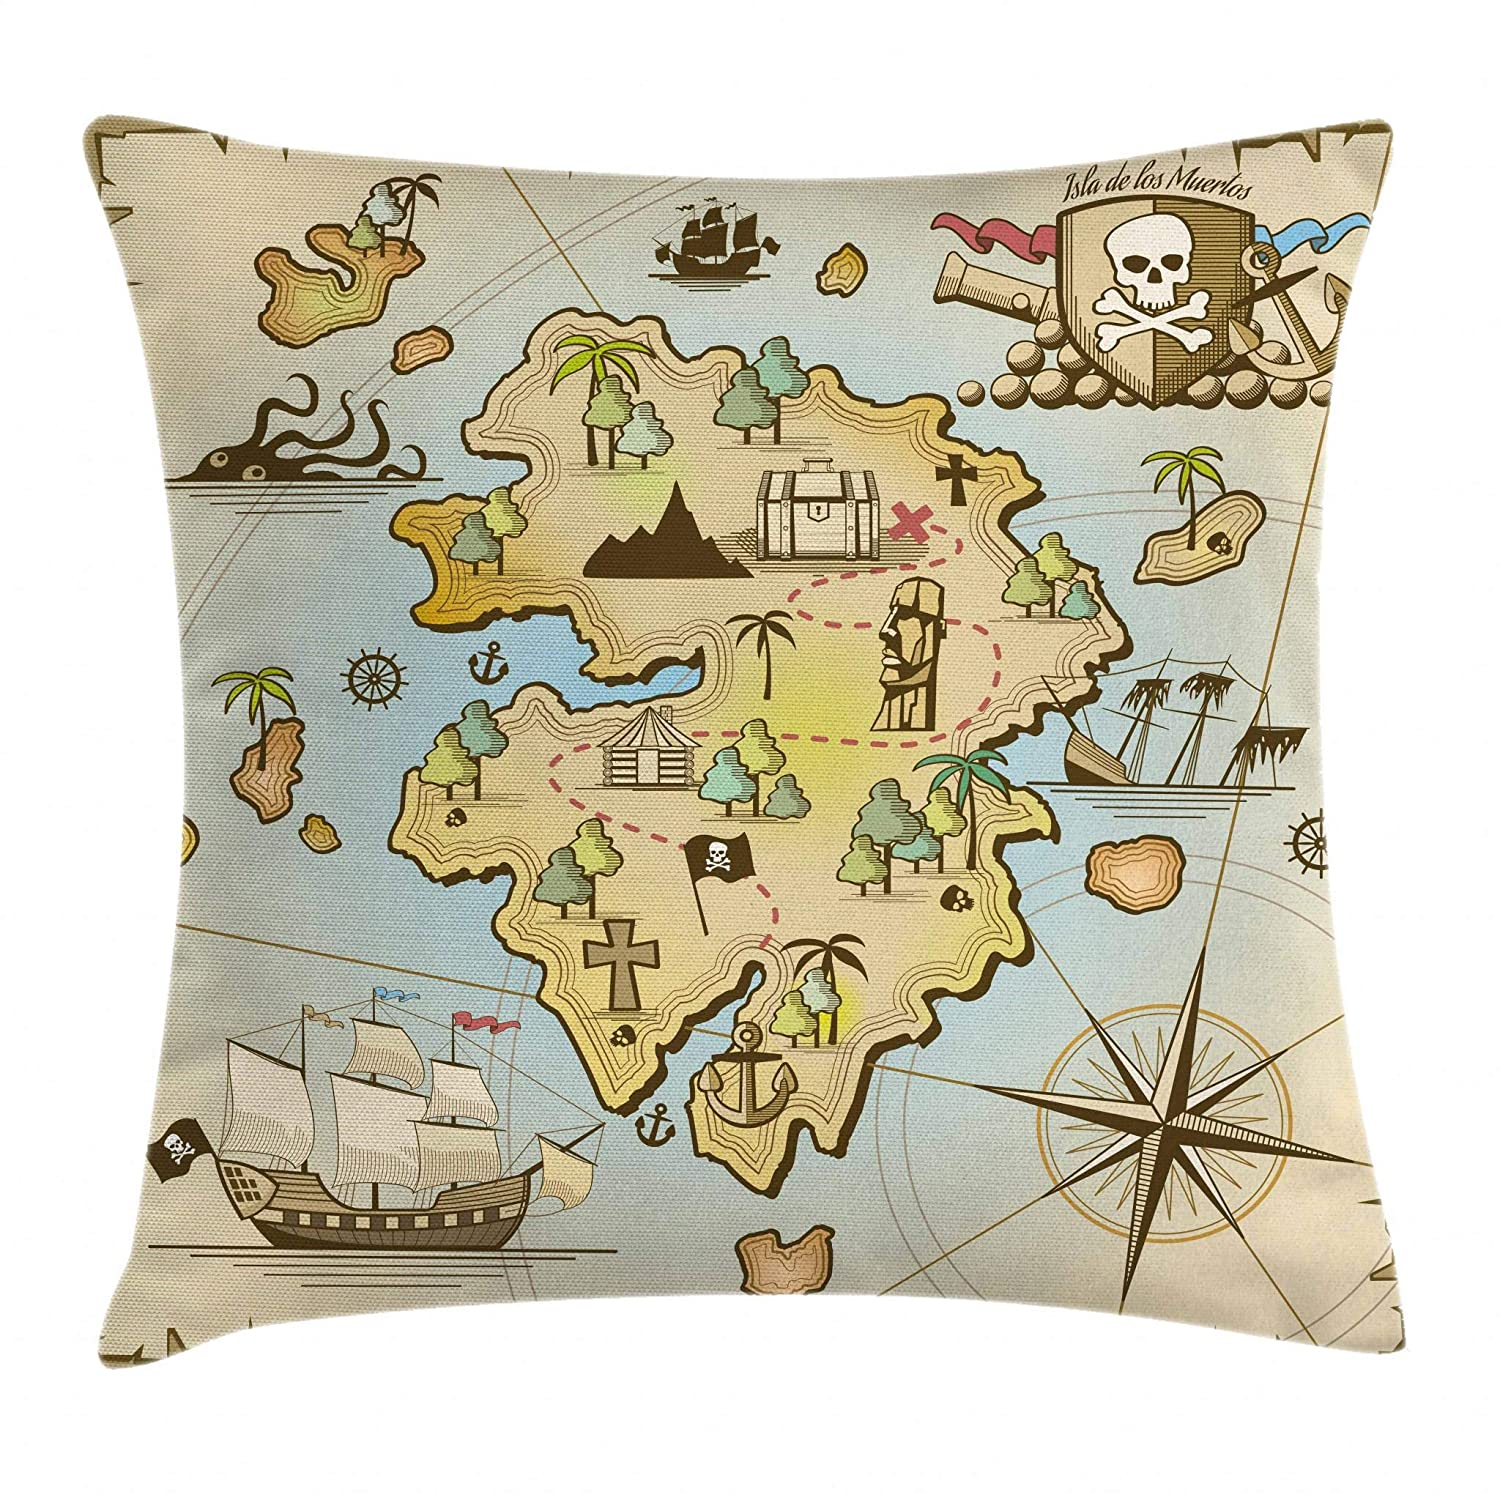 20 X 20 Inches Ambesonne Nautical Decor Throw Pillow Cushion Cover by Blue Decorative Square Accent Pillow Case Underwater Marine Life Scenery with Exotic Fish Reefs in the Ocean Caribbean Image